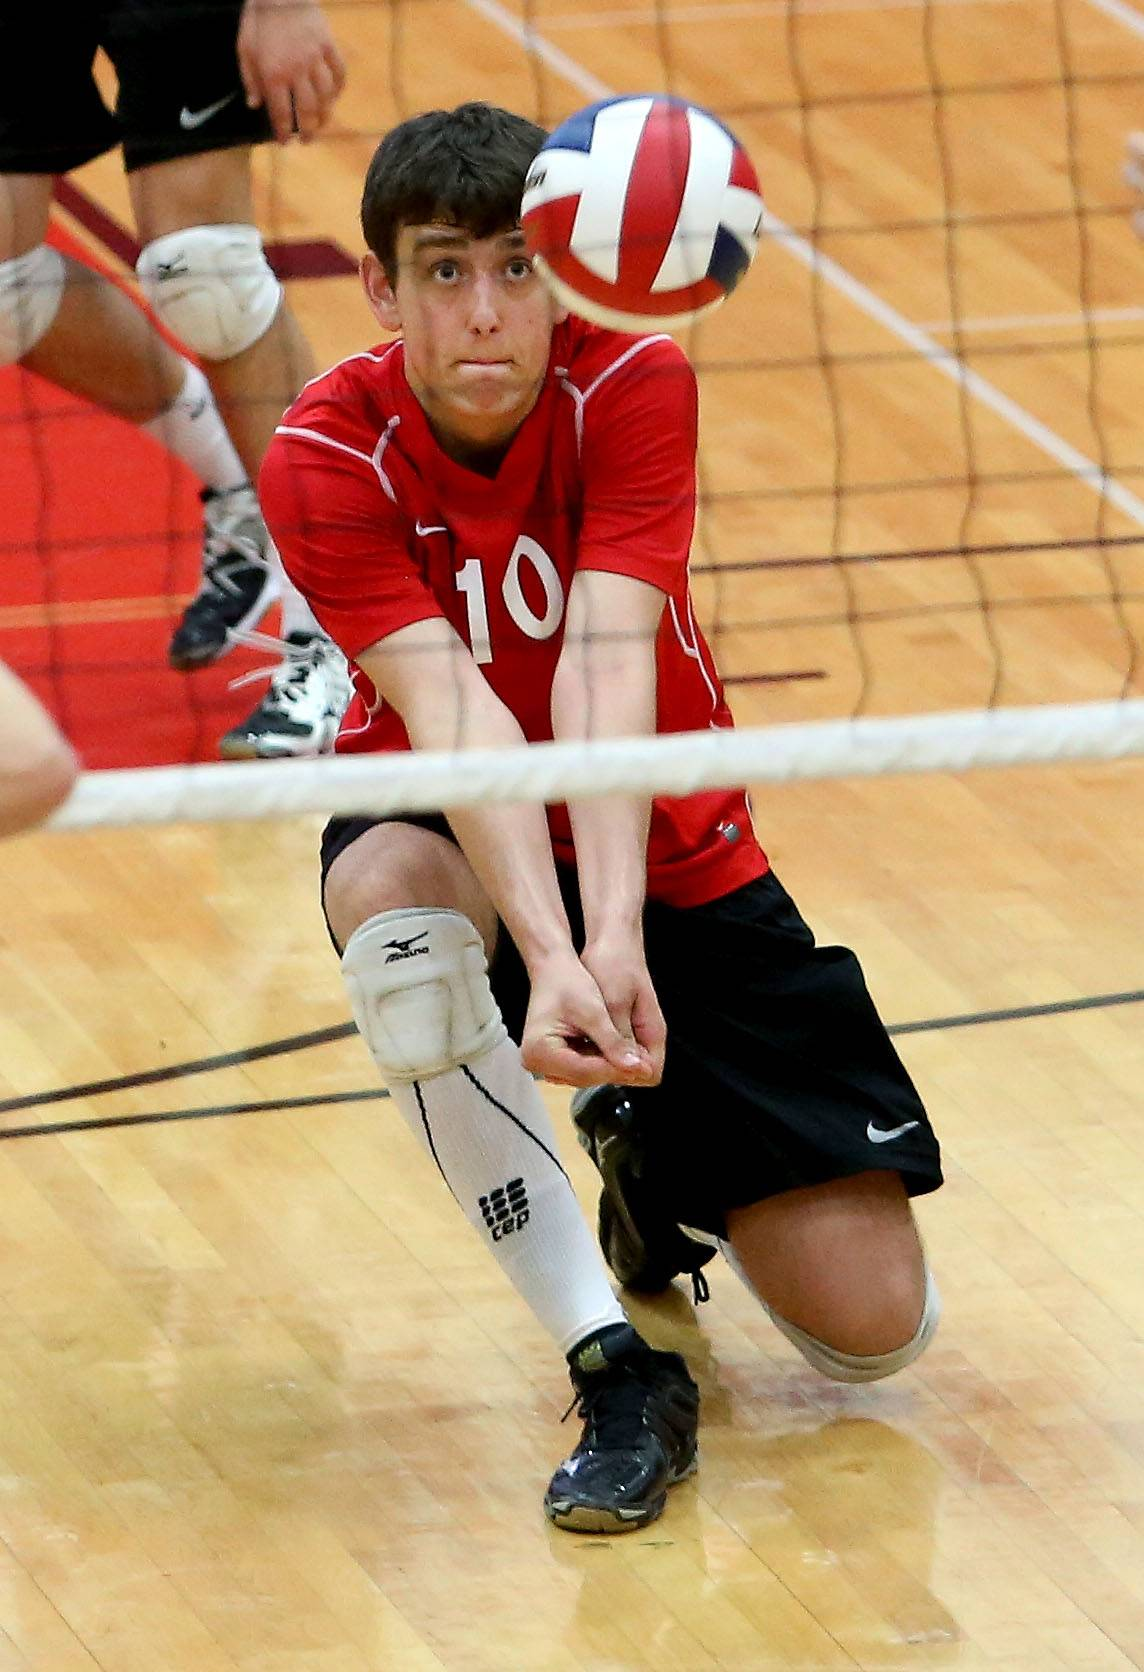 Naperville Central's Jon Chiczewski gets to the ball in action against Glenbard West during the boys volleyball sectional championship at Hinsdale Central on Tuesday.